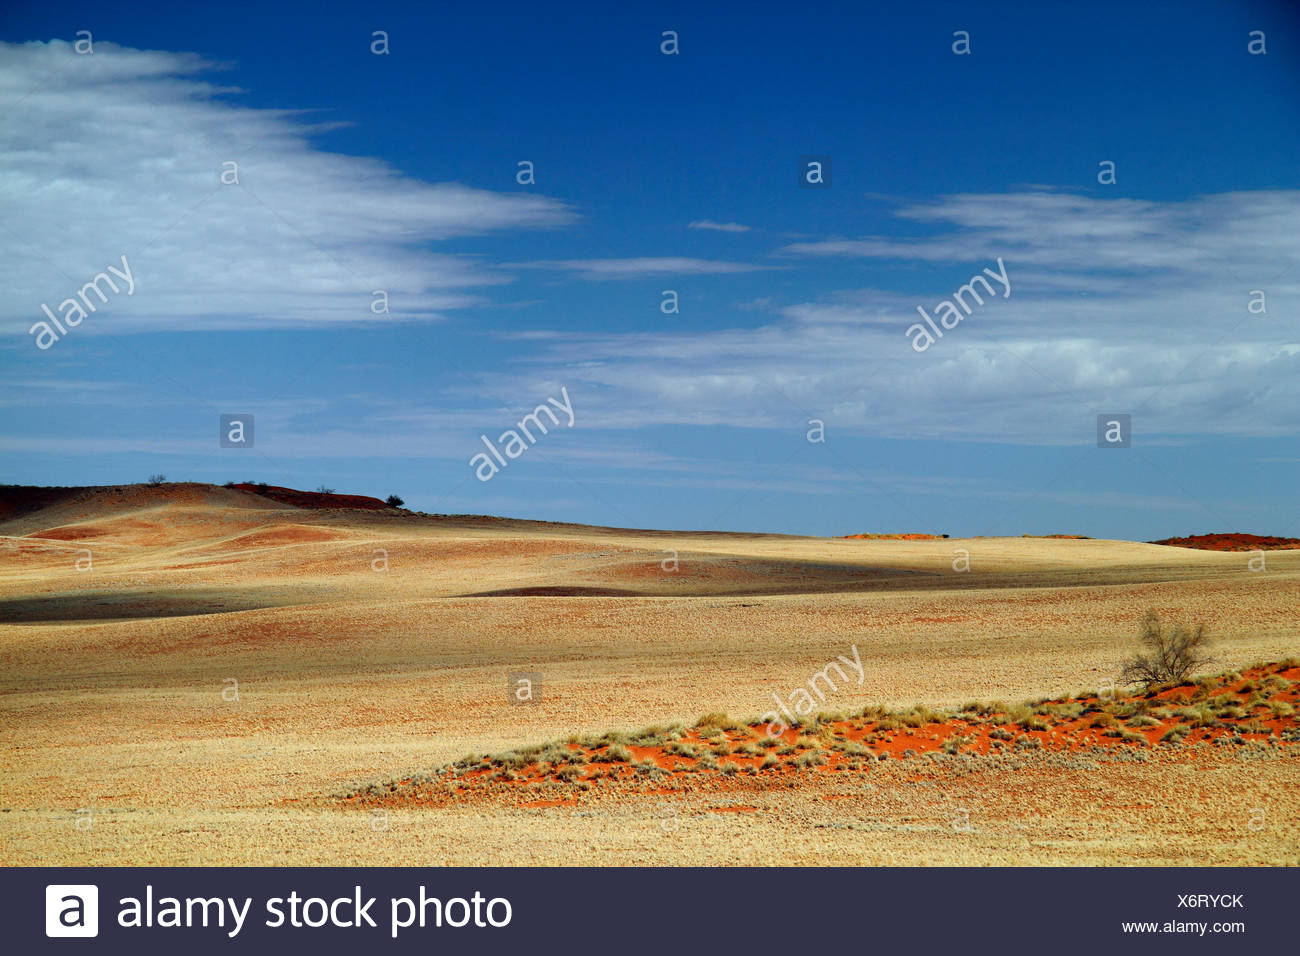 desert landscape with clouded sky, Namibia, Namib Naukluft National Park - Stock Image